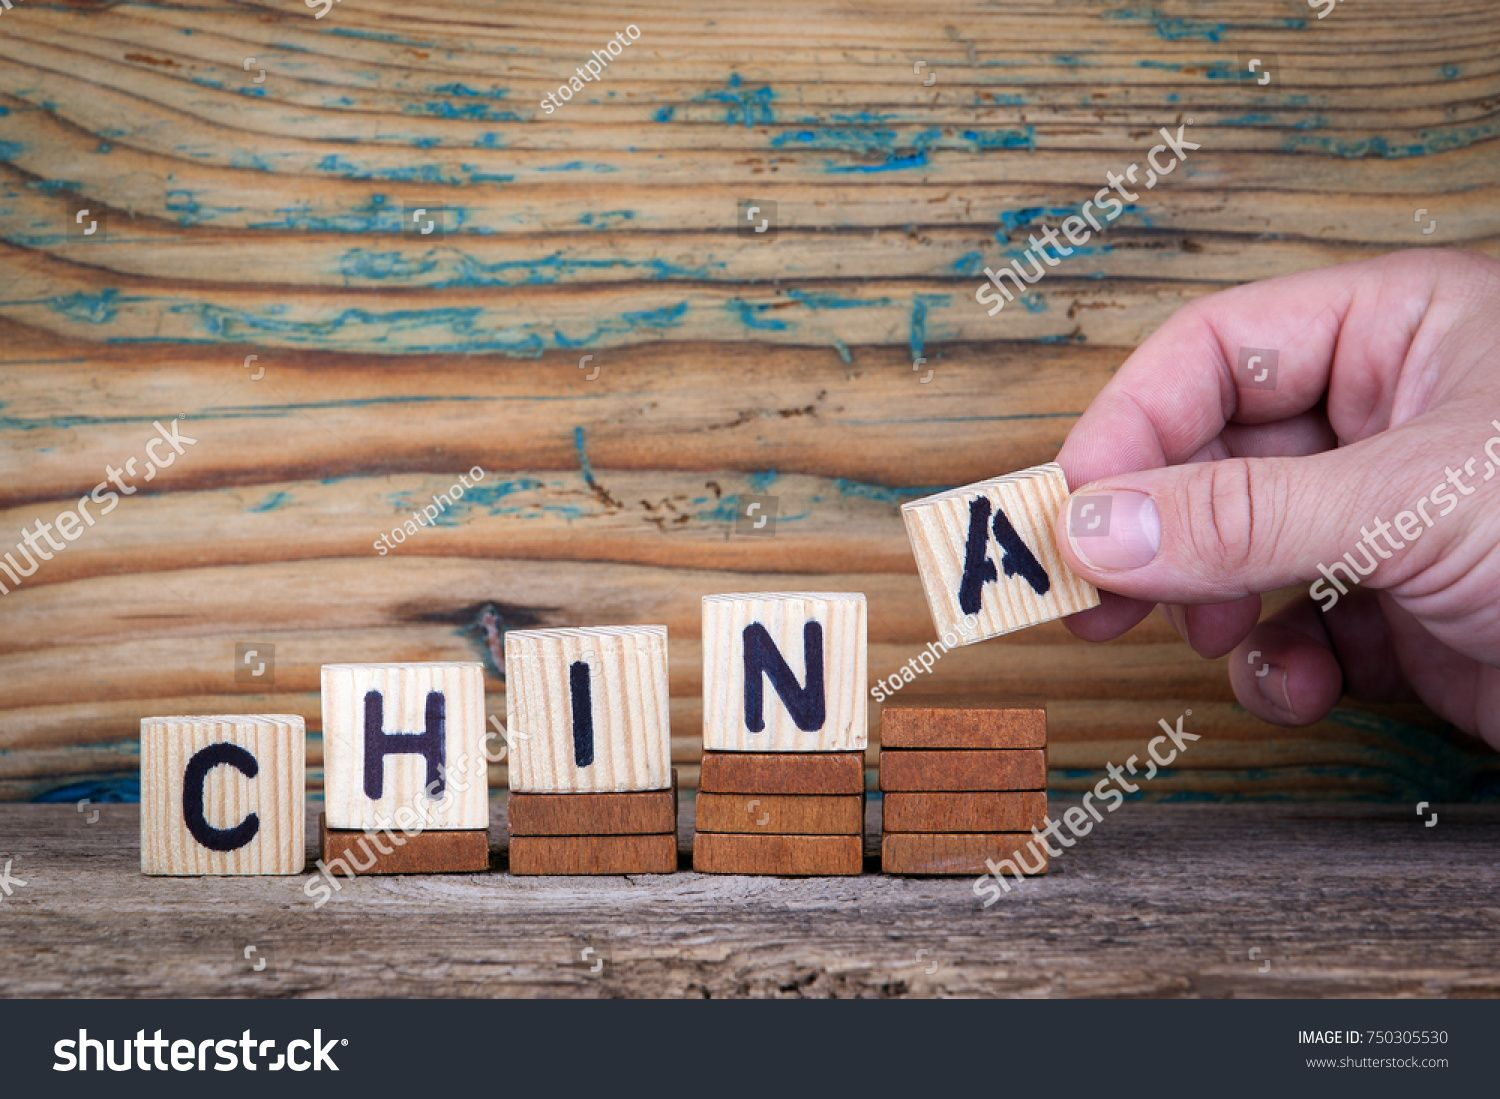 china. Wooden letters on the office desk, informative and communication background